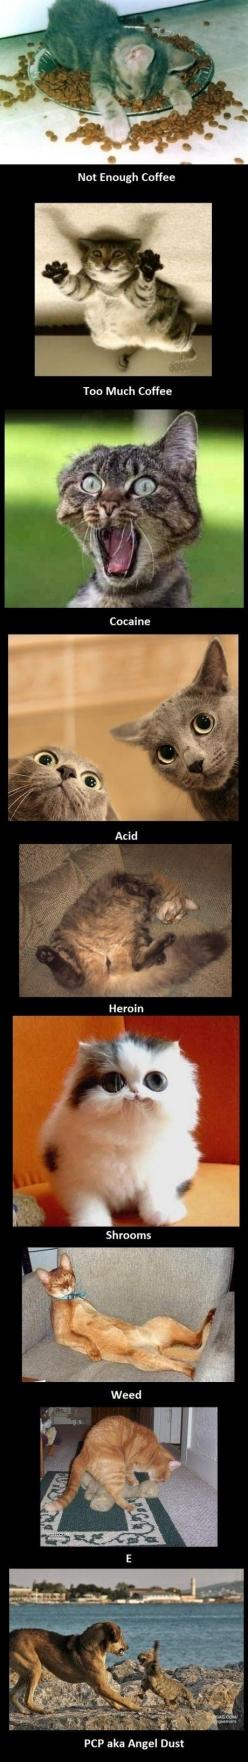 Haha - animals make everything even funnier to me!: Cats, Animals, Funny Cat, Drugs, Crazy Cat, Humor, Funnies